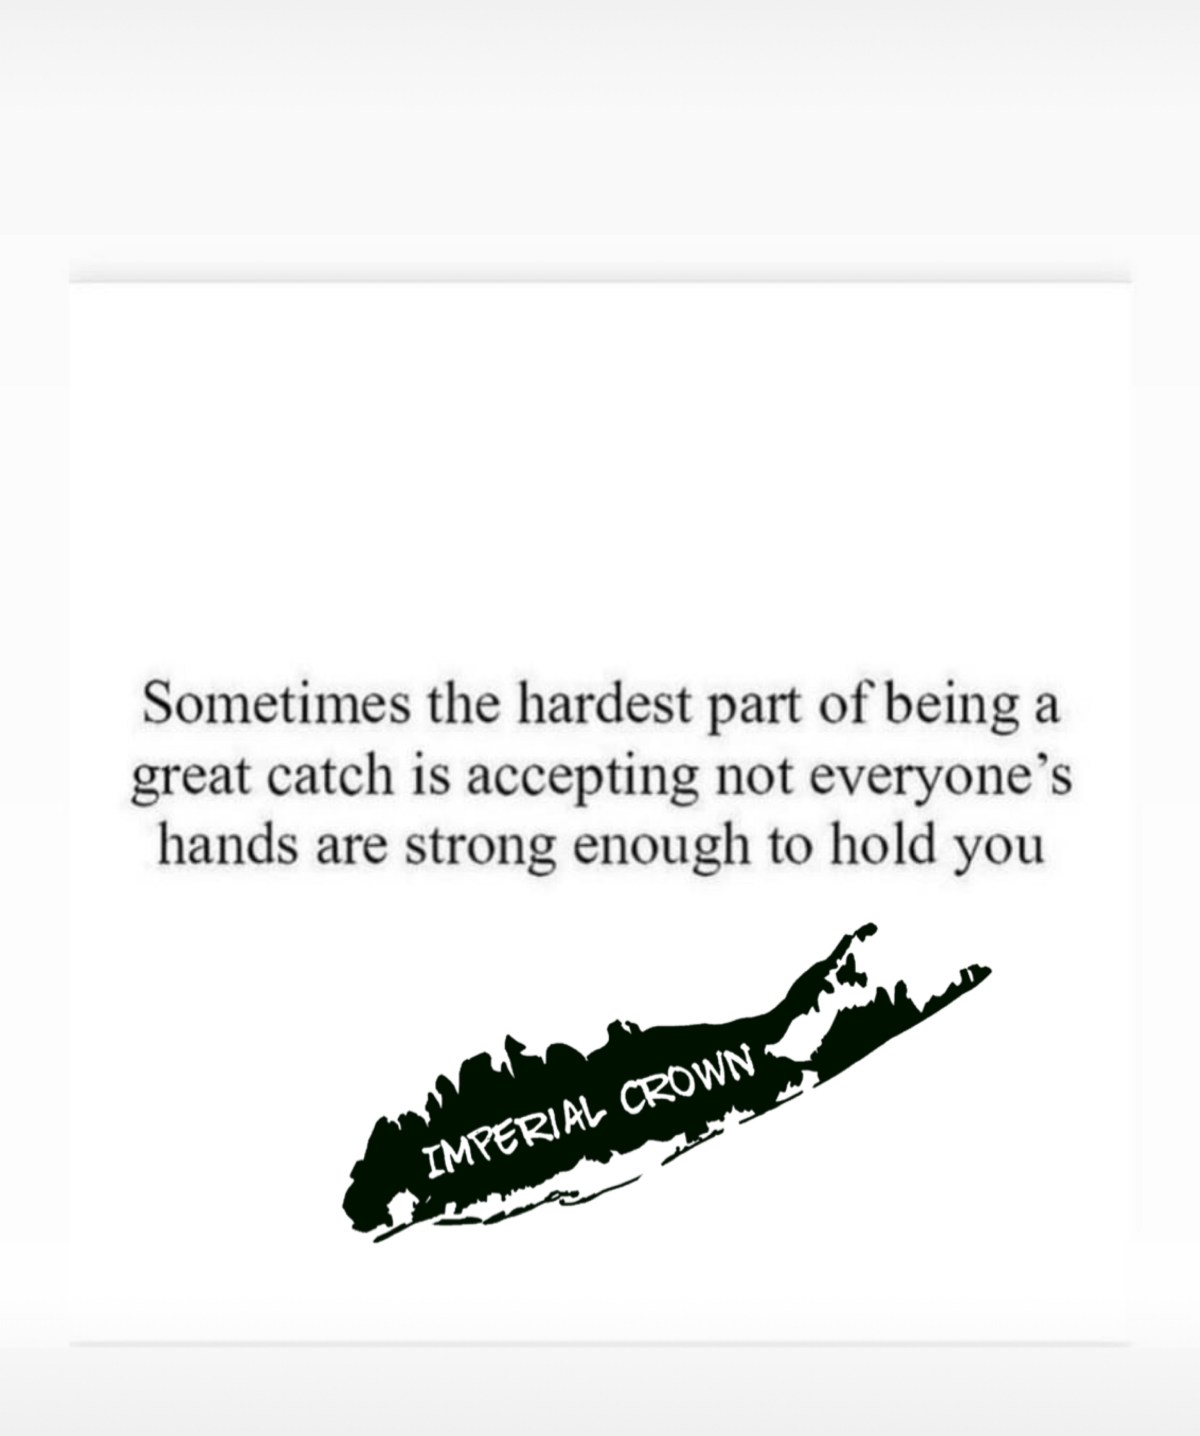 Sometimes the hardest part of being a great catch is accepting not everyone's hands are strong enough to hold you